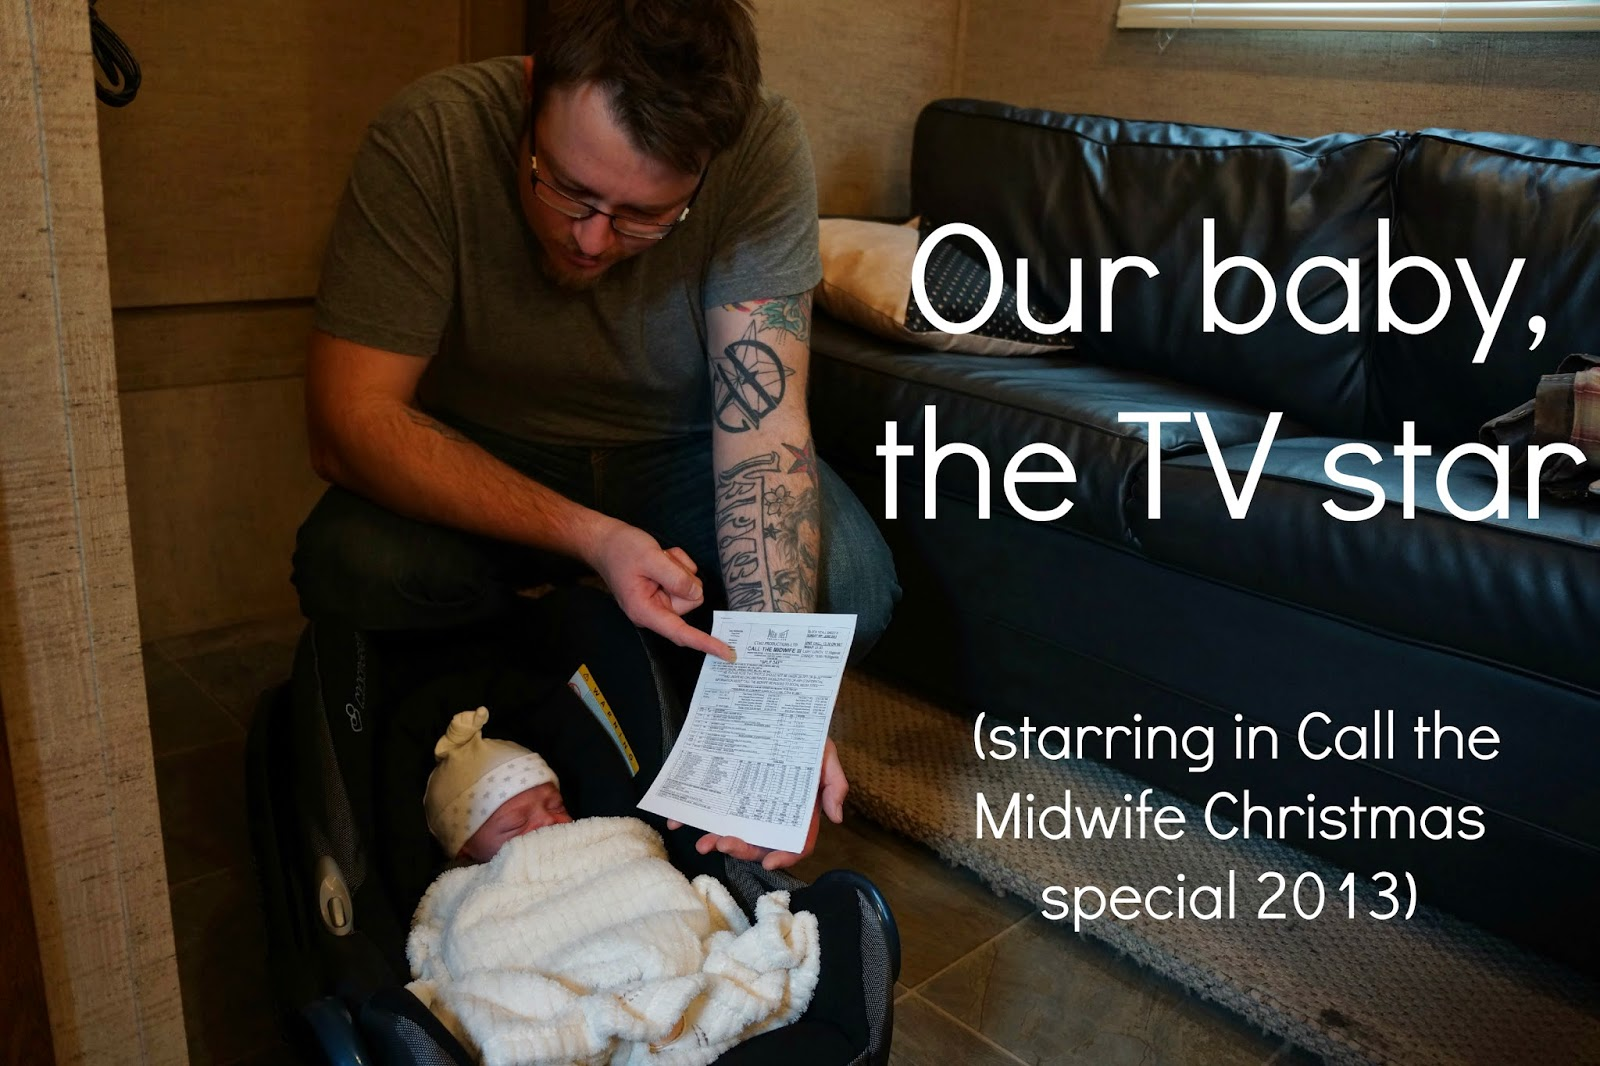 http://www.wavetomummy.com/2014/12/our-baby-tv-star.html